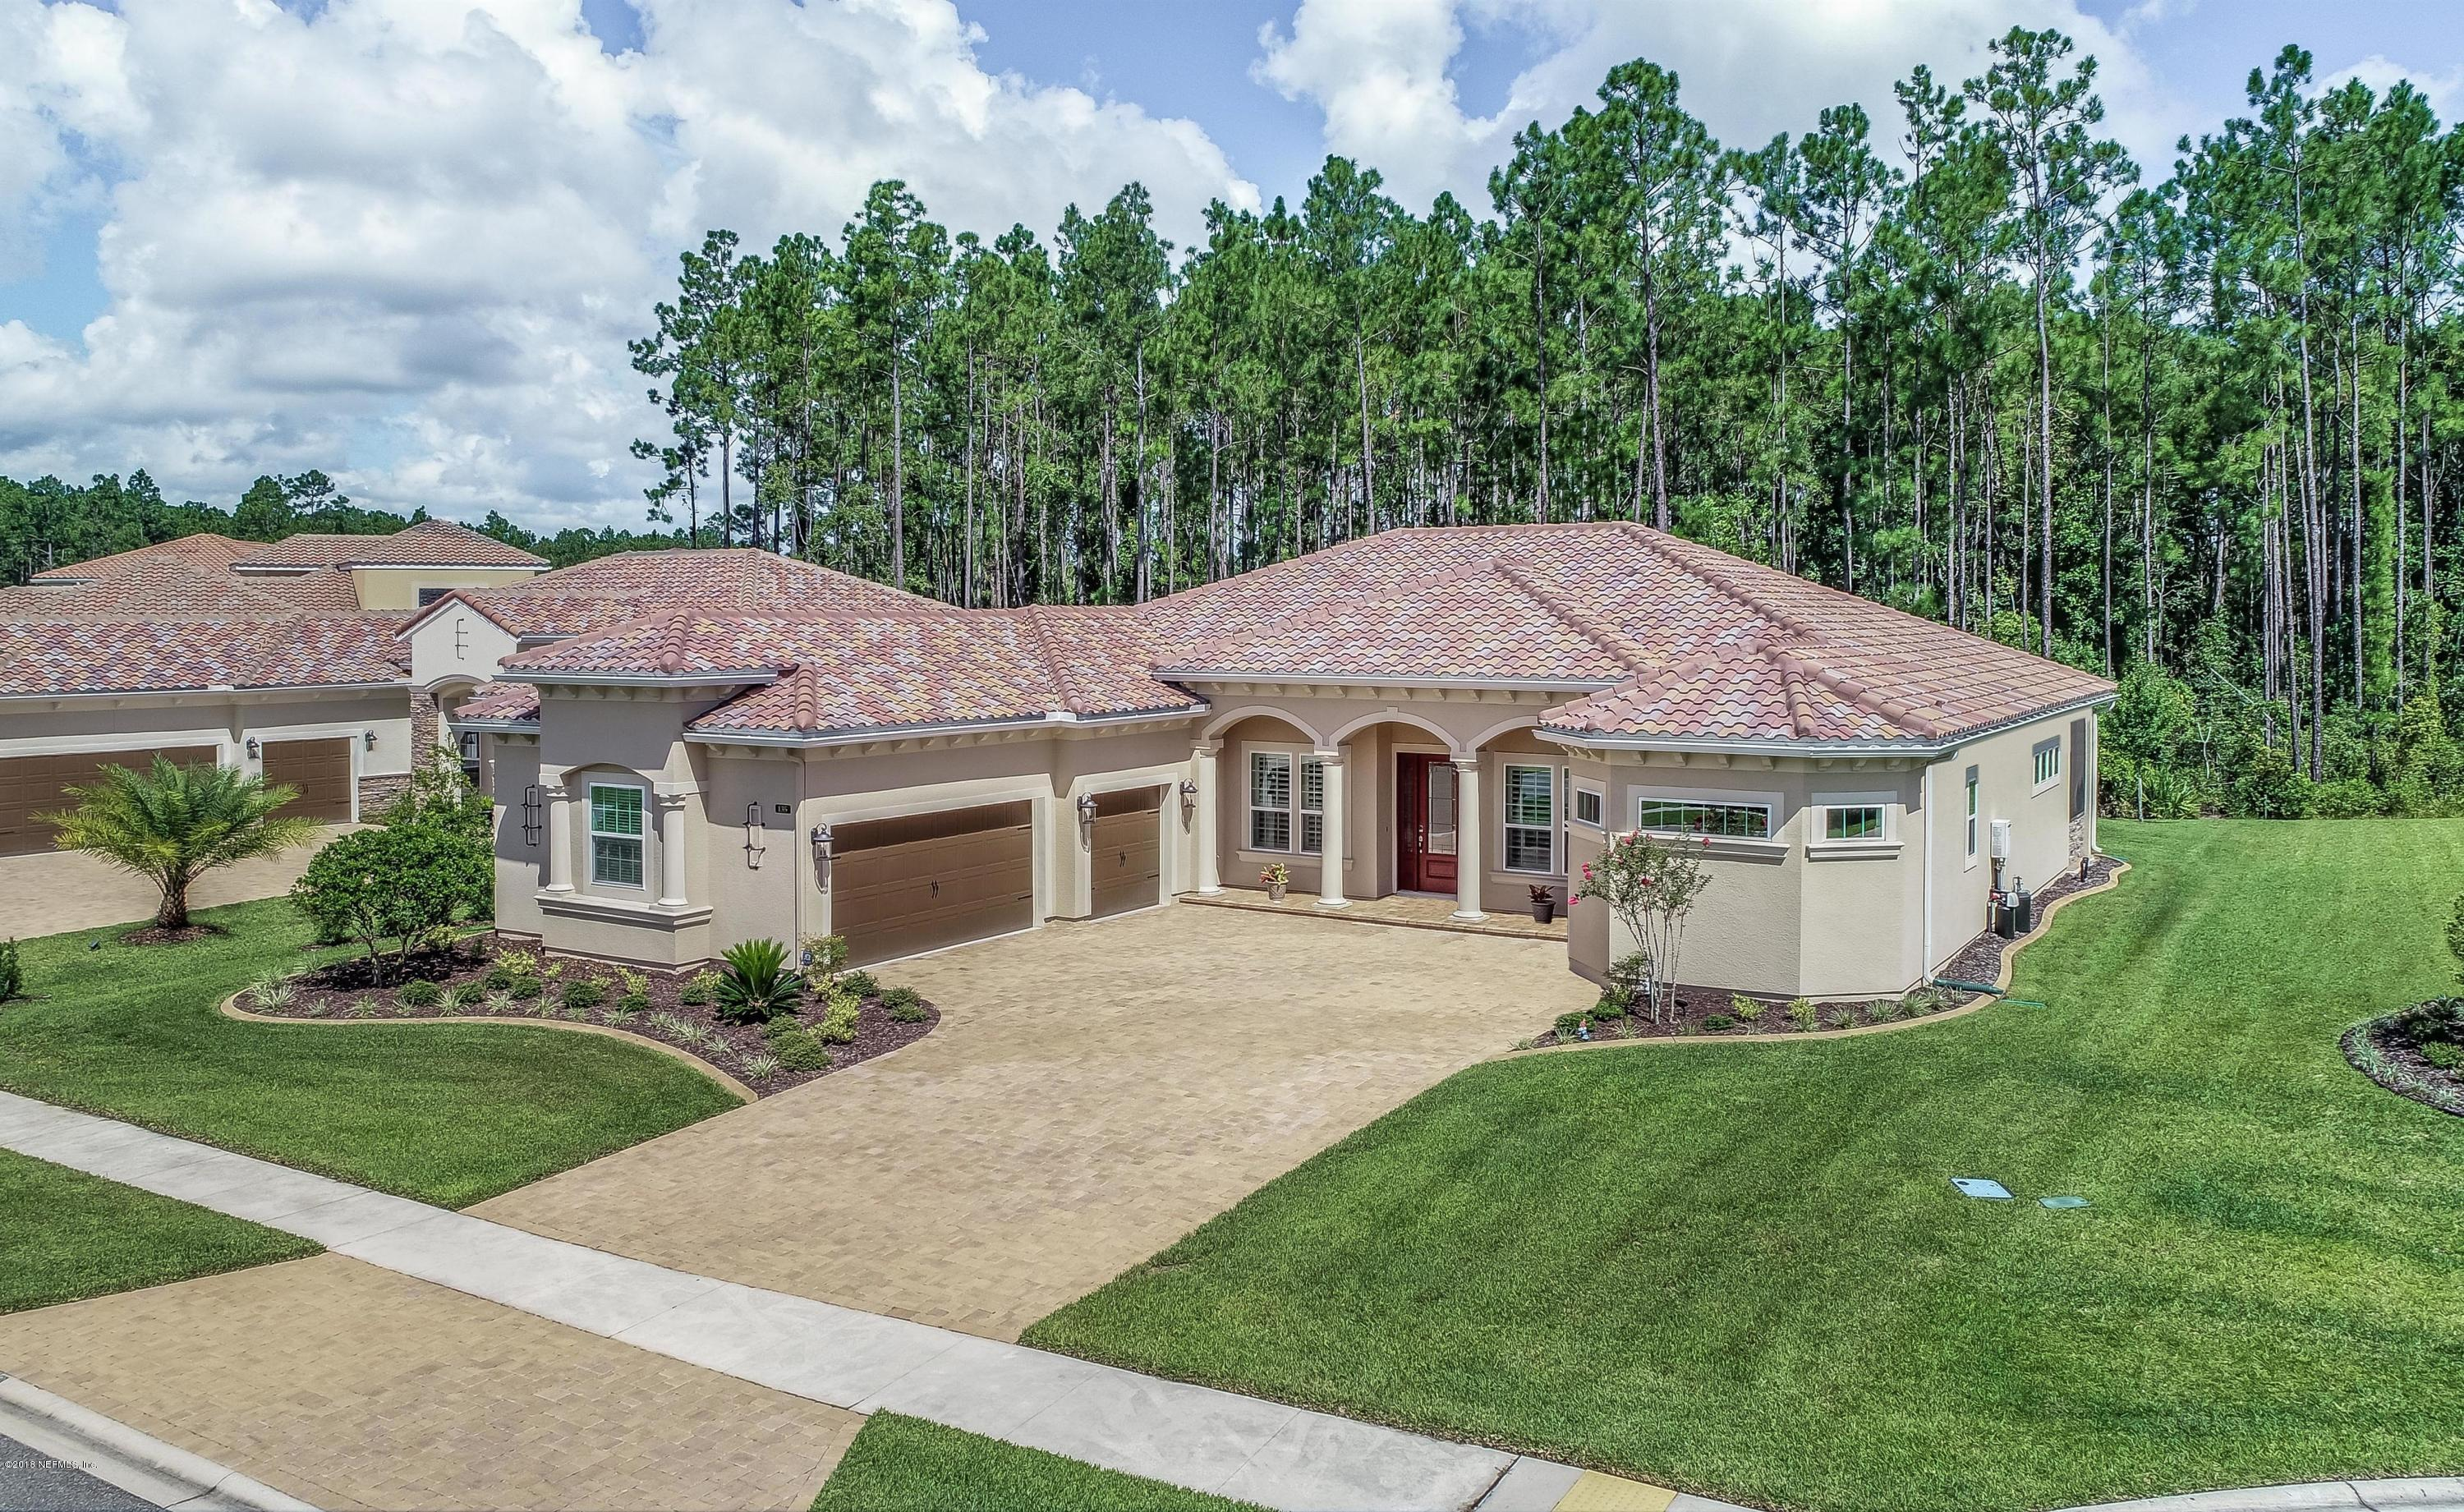 135 CODO, ST AUGUSTINE, FLORIDA 32095, 4 Bedrooms Bedrooms, ,3 BathroomsBathrooms,Residential - single family,For sale,CODO,955629